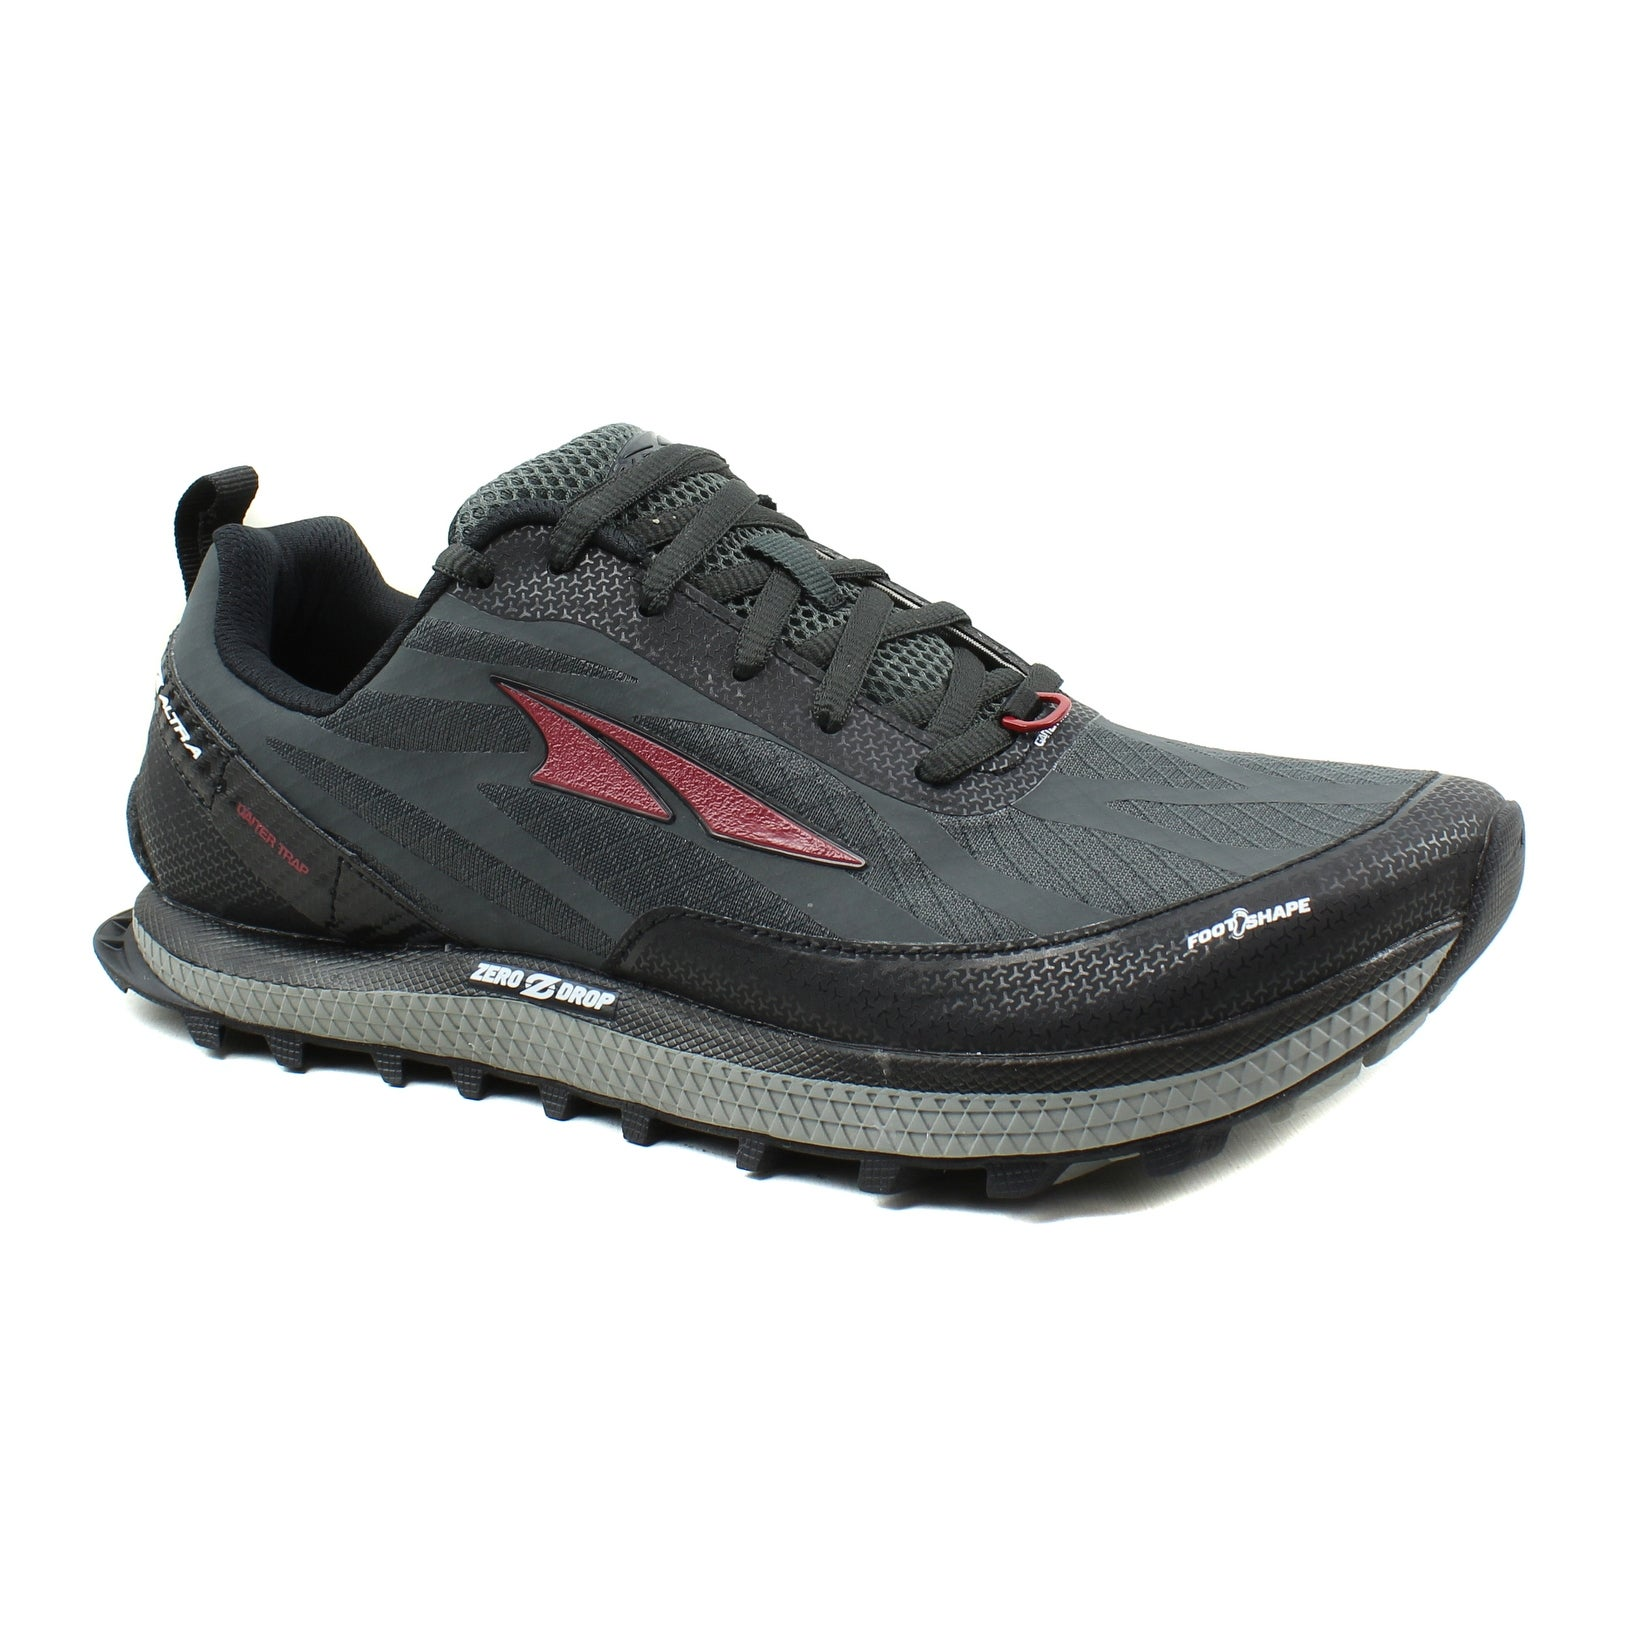 9a76734f10e35 Buy Men's Athletic Shoes Online at Overstock | Our Best Men's Shoes ...